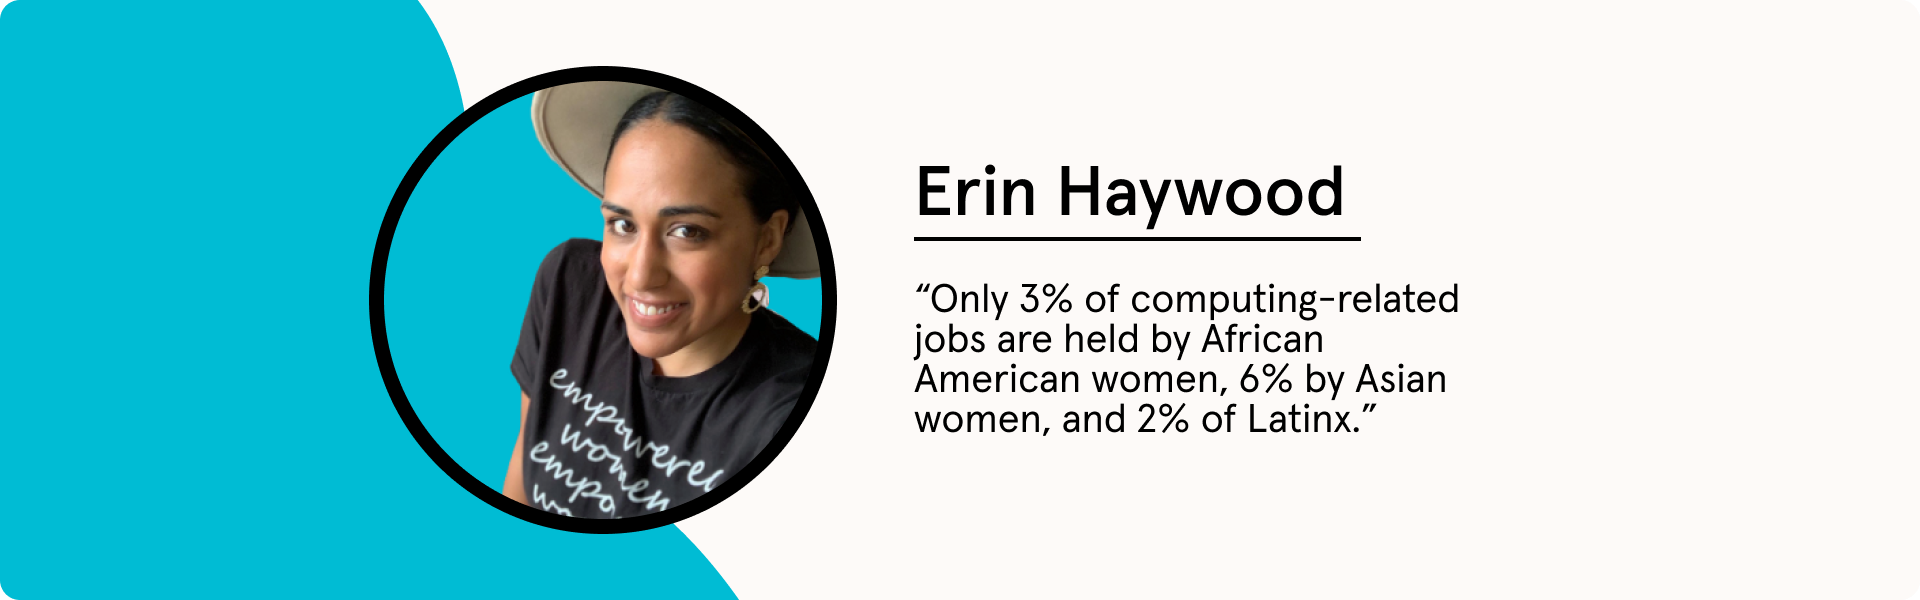 """Erin Haywood says """"Only 3% of computing-reated jobs are held by African American women, 6% by Asian women, and 2% of Latnix."""""""